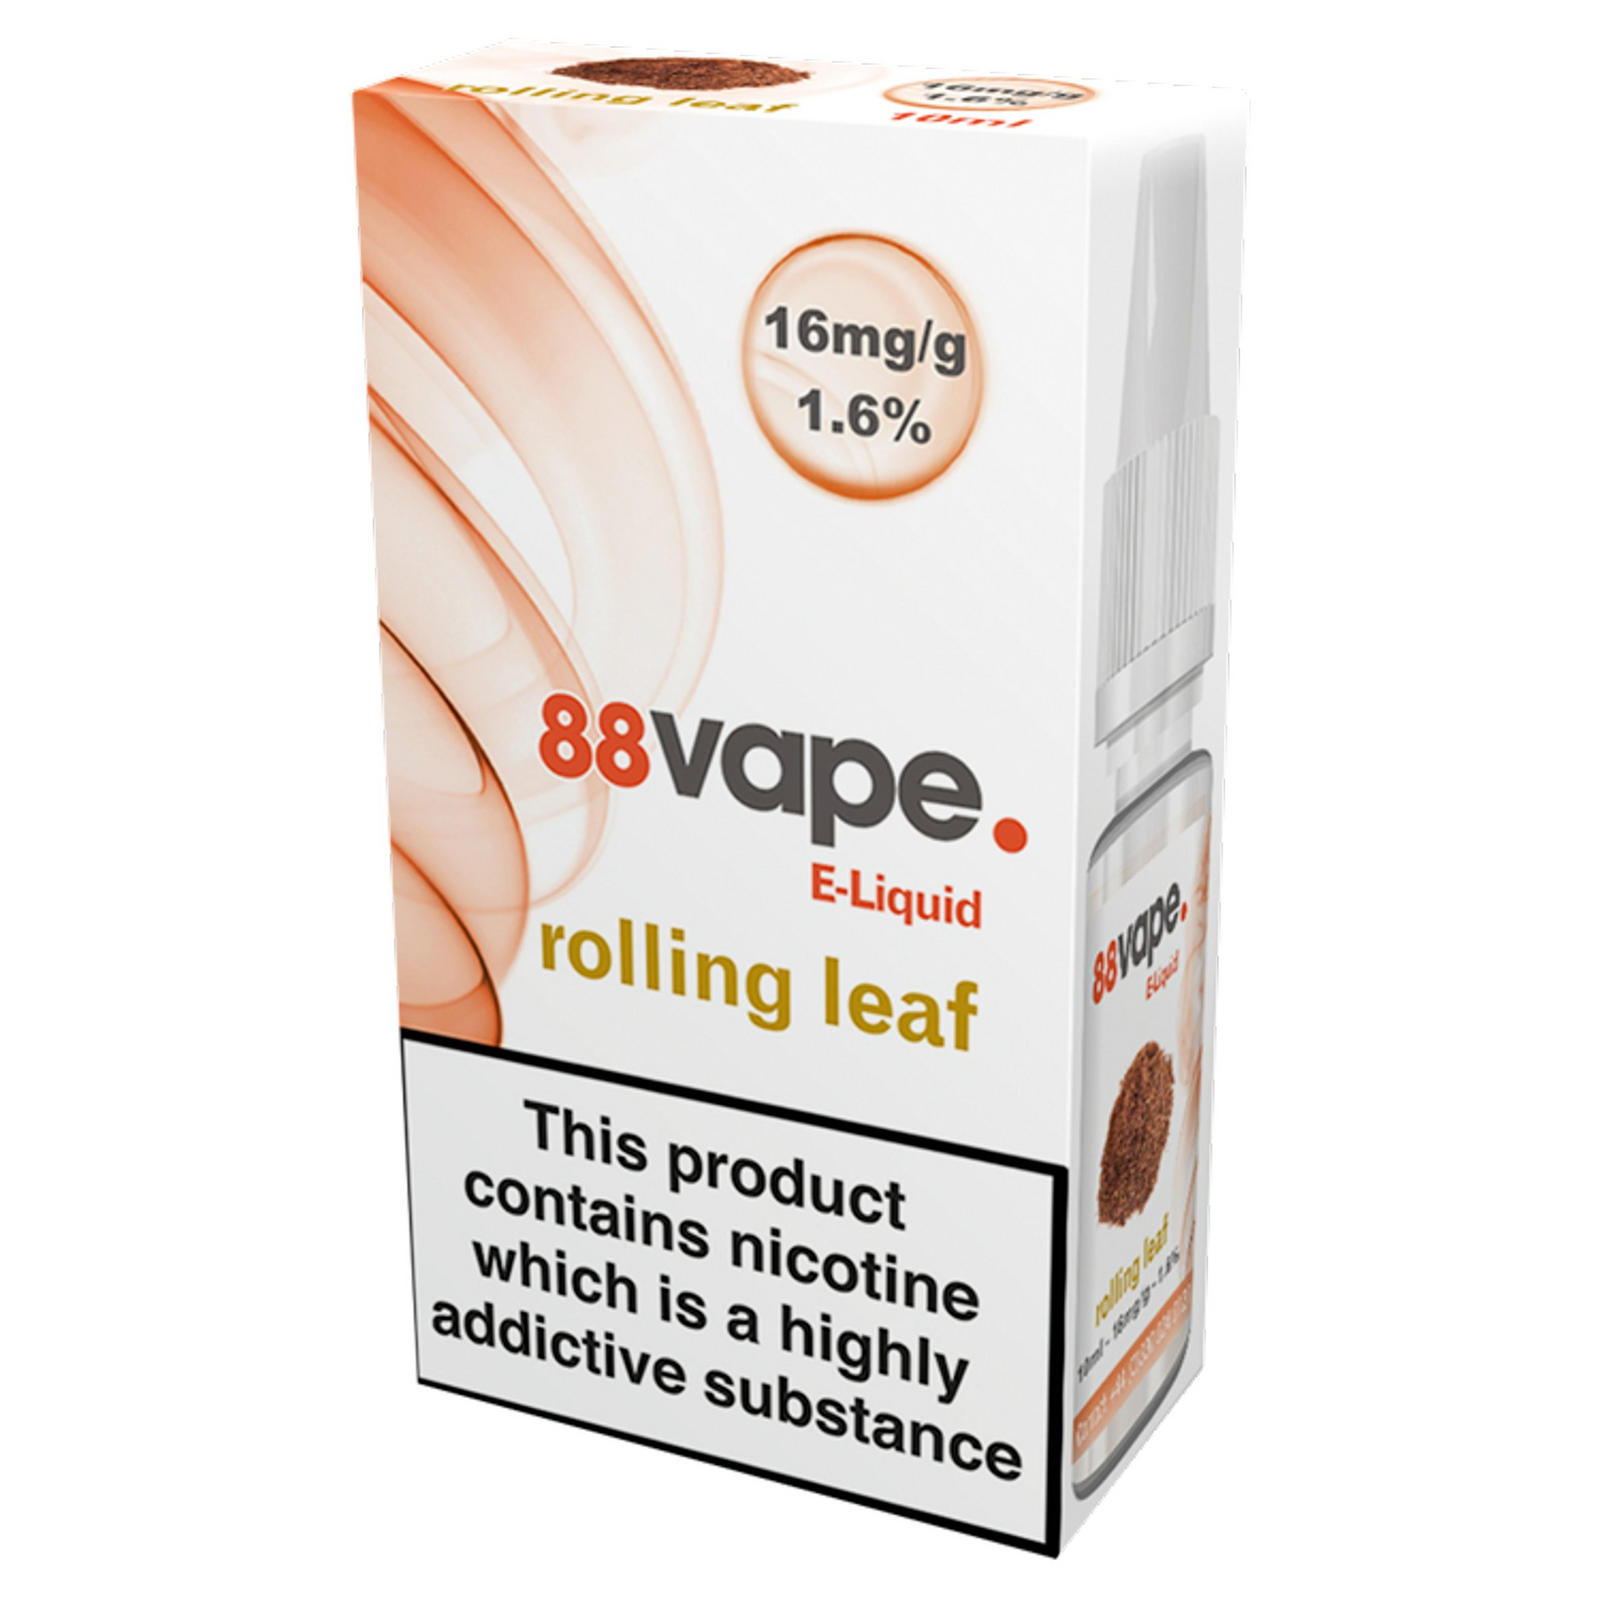 88Vape E-Liquid 16mg Rolling Leaf 10ml | Electronic Cigarettes